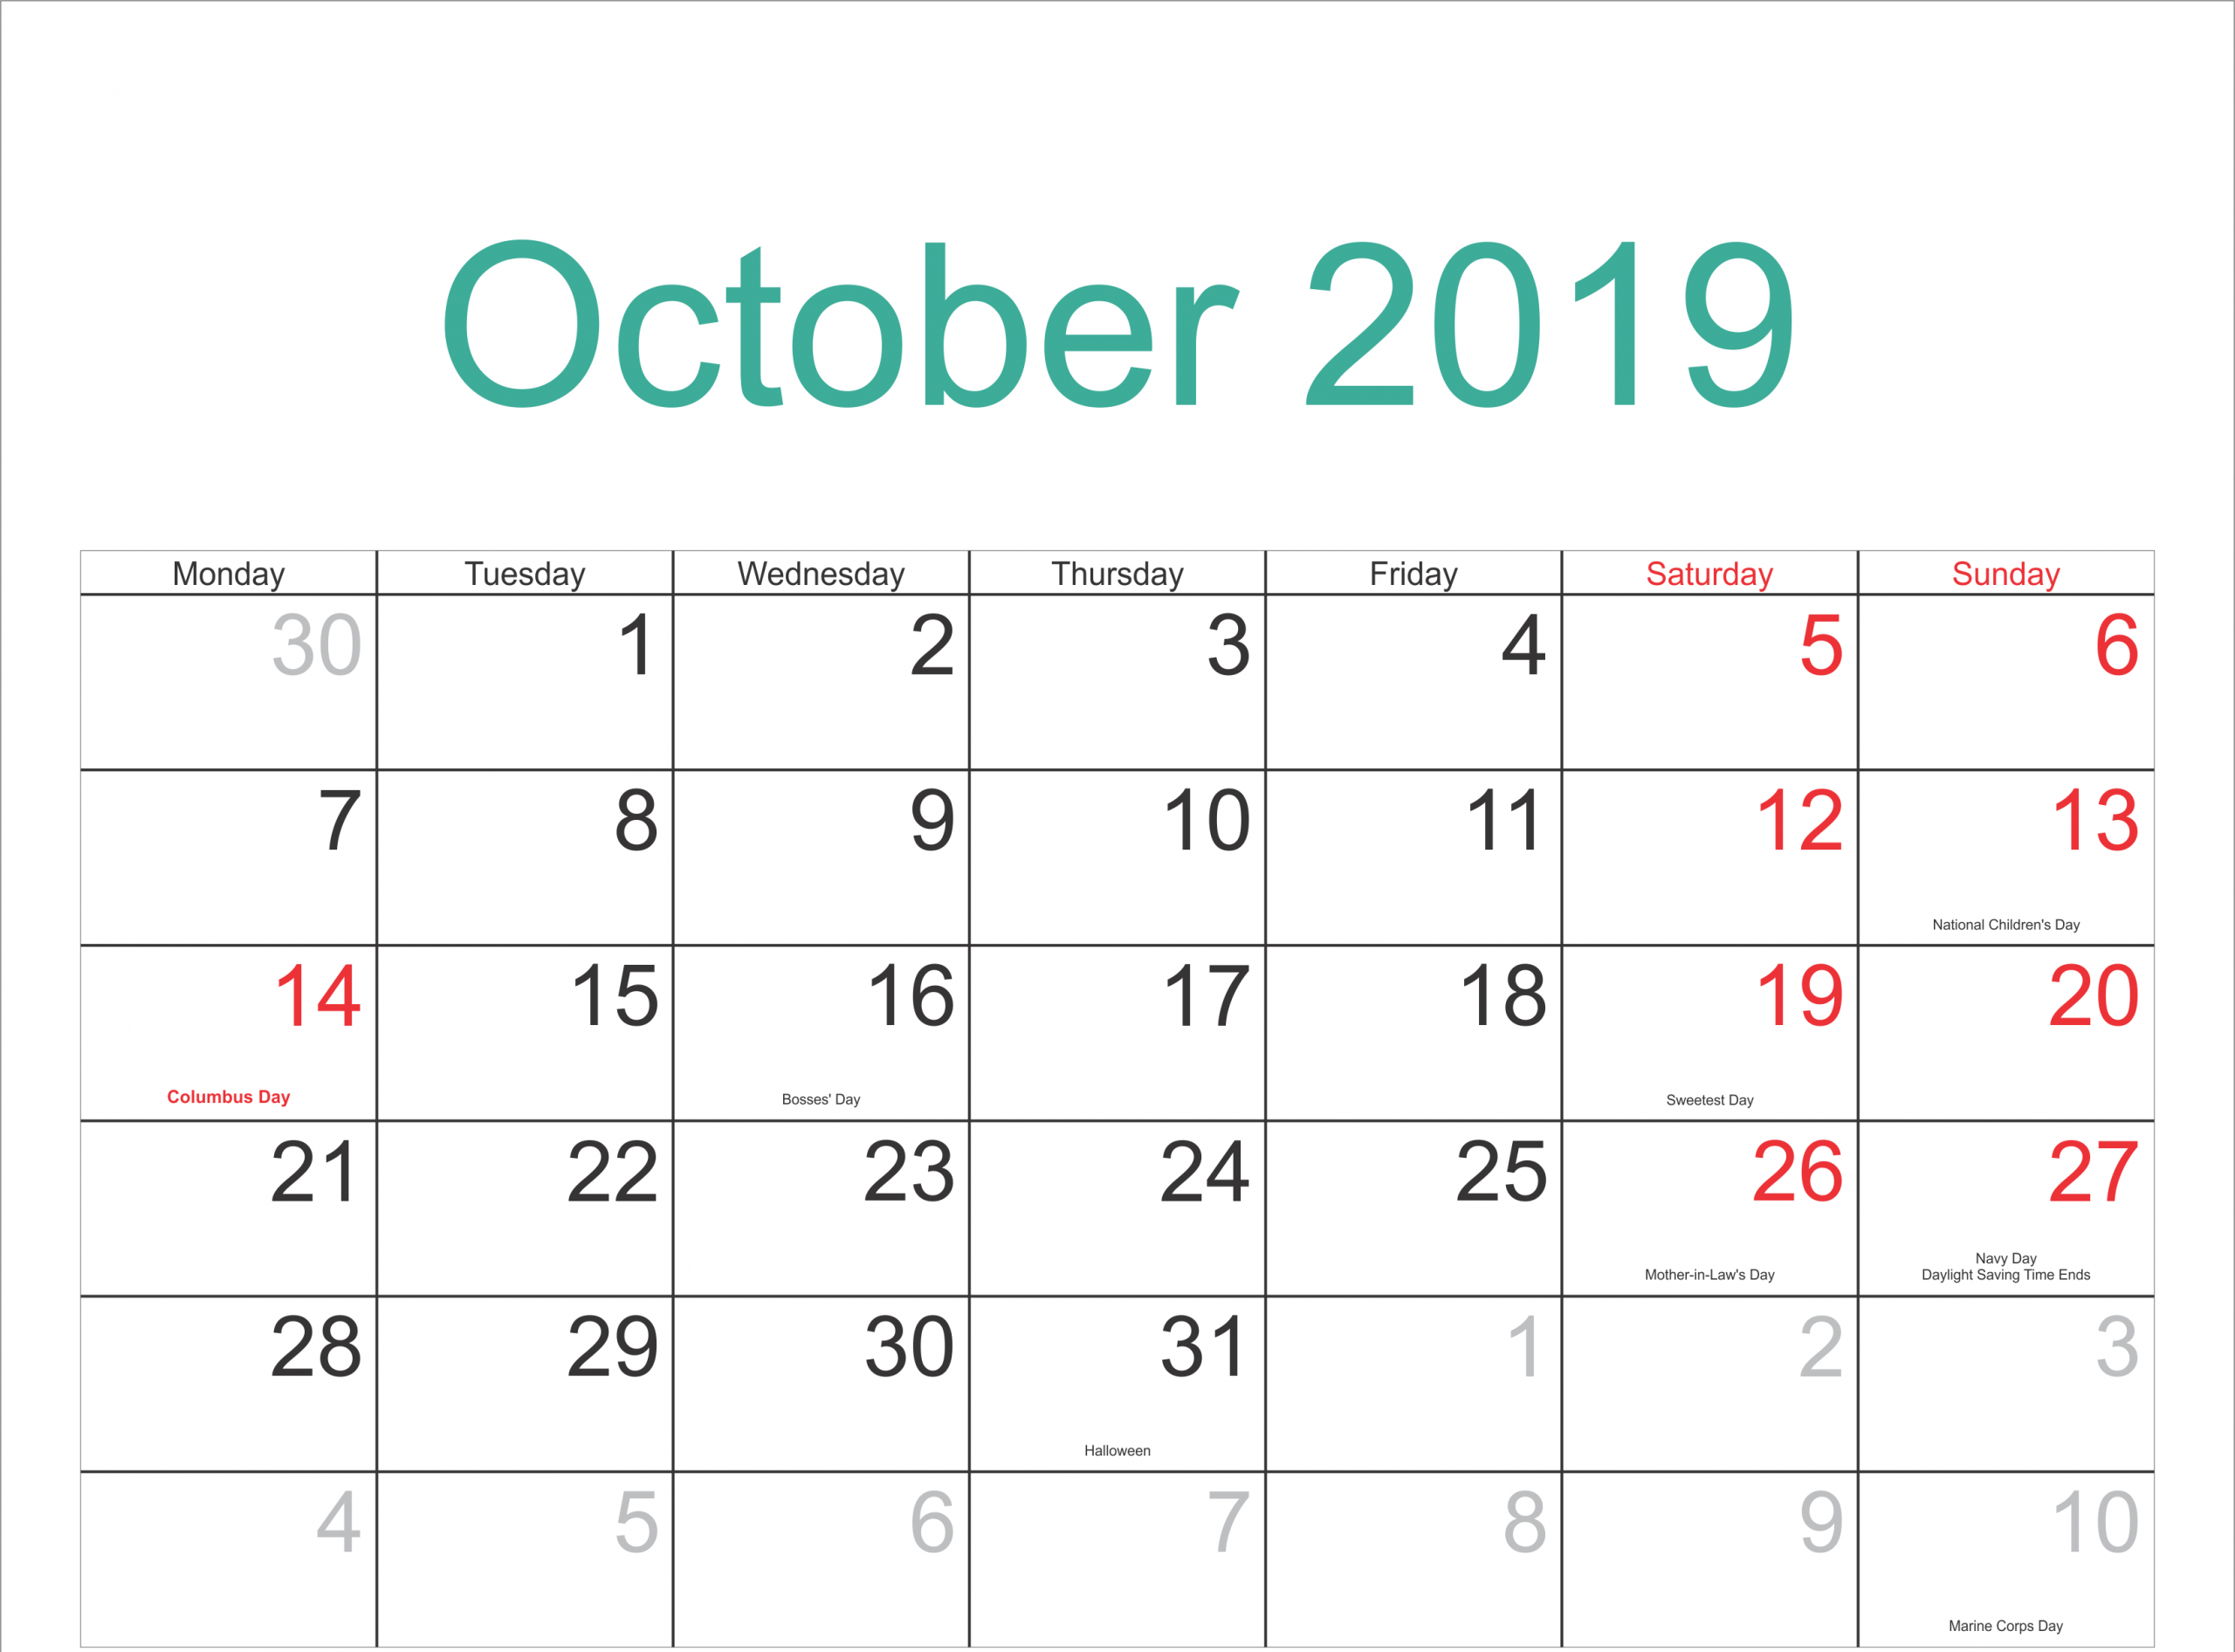 October 2019 Calendar With Holidays Template | October